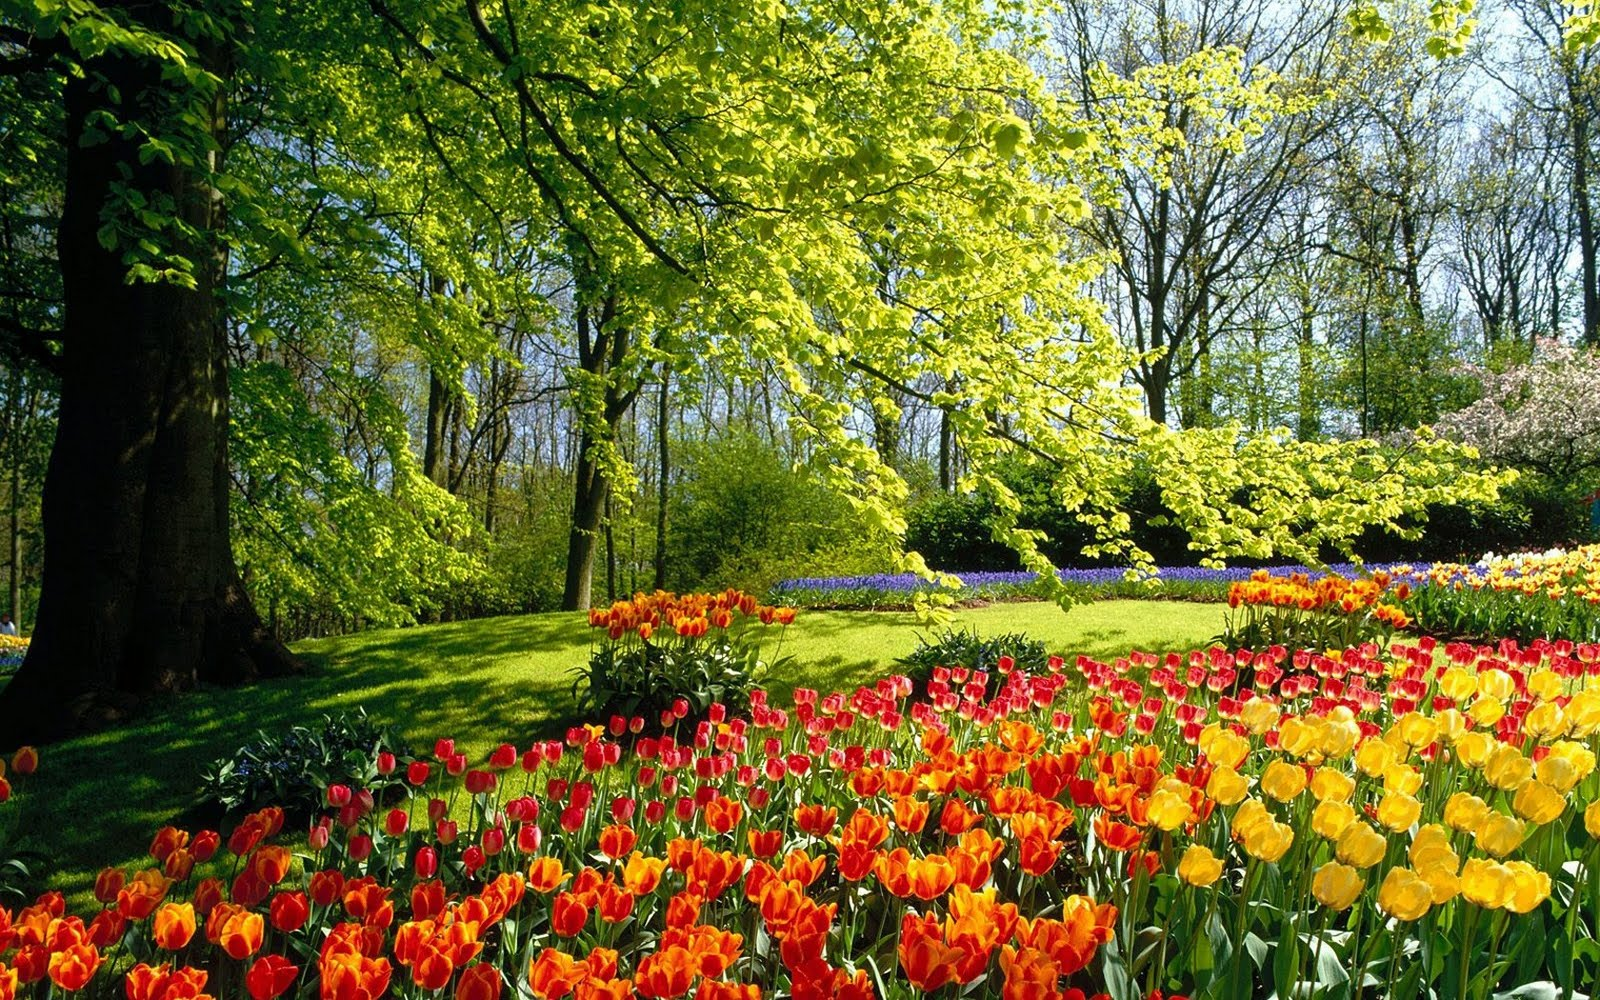 red tulips in spring wallpapers - Wallpaper red tulips in spring Wallpapers HD